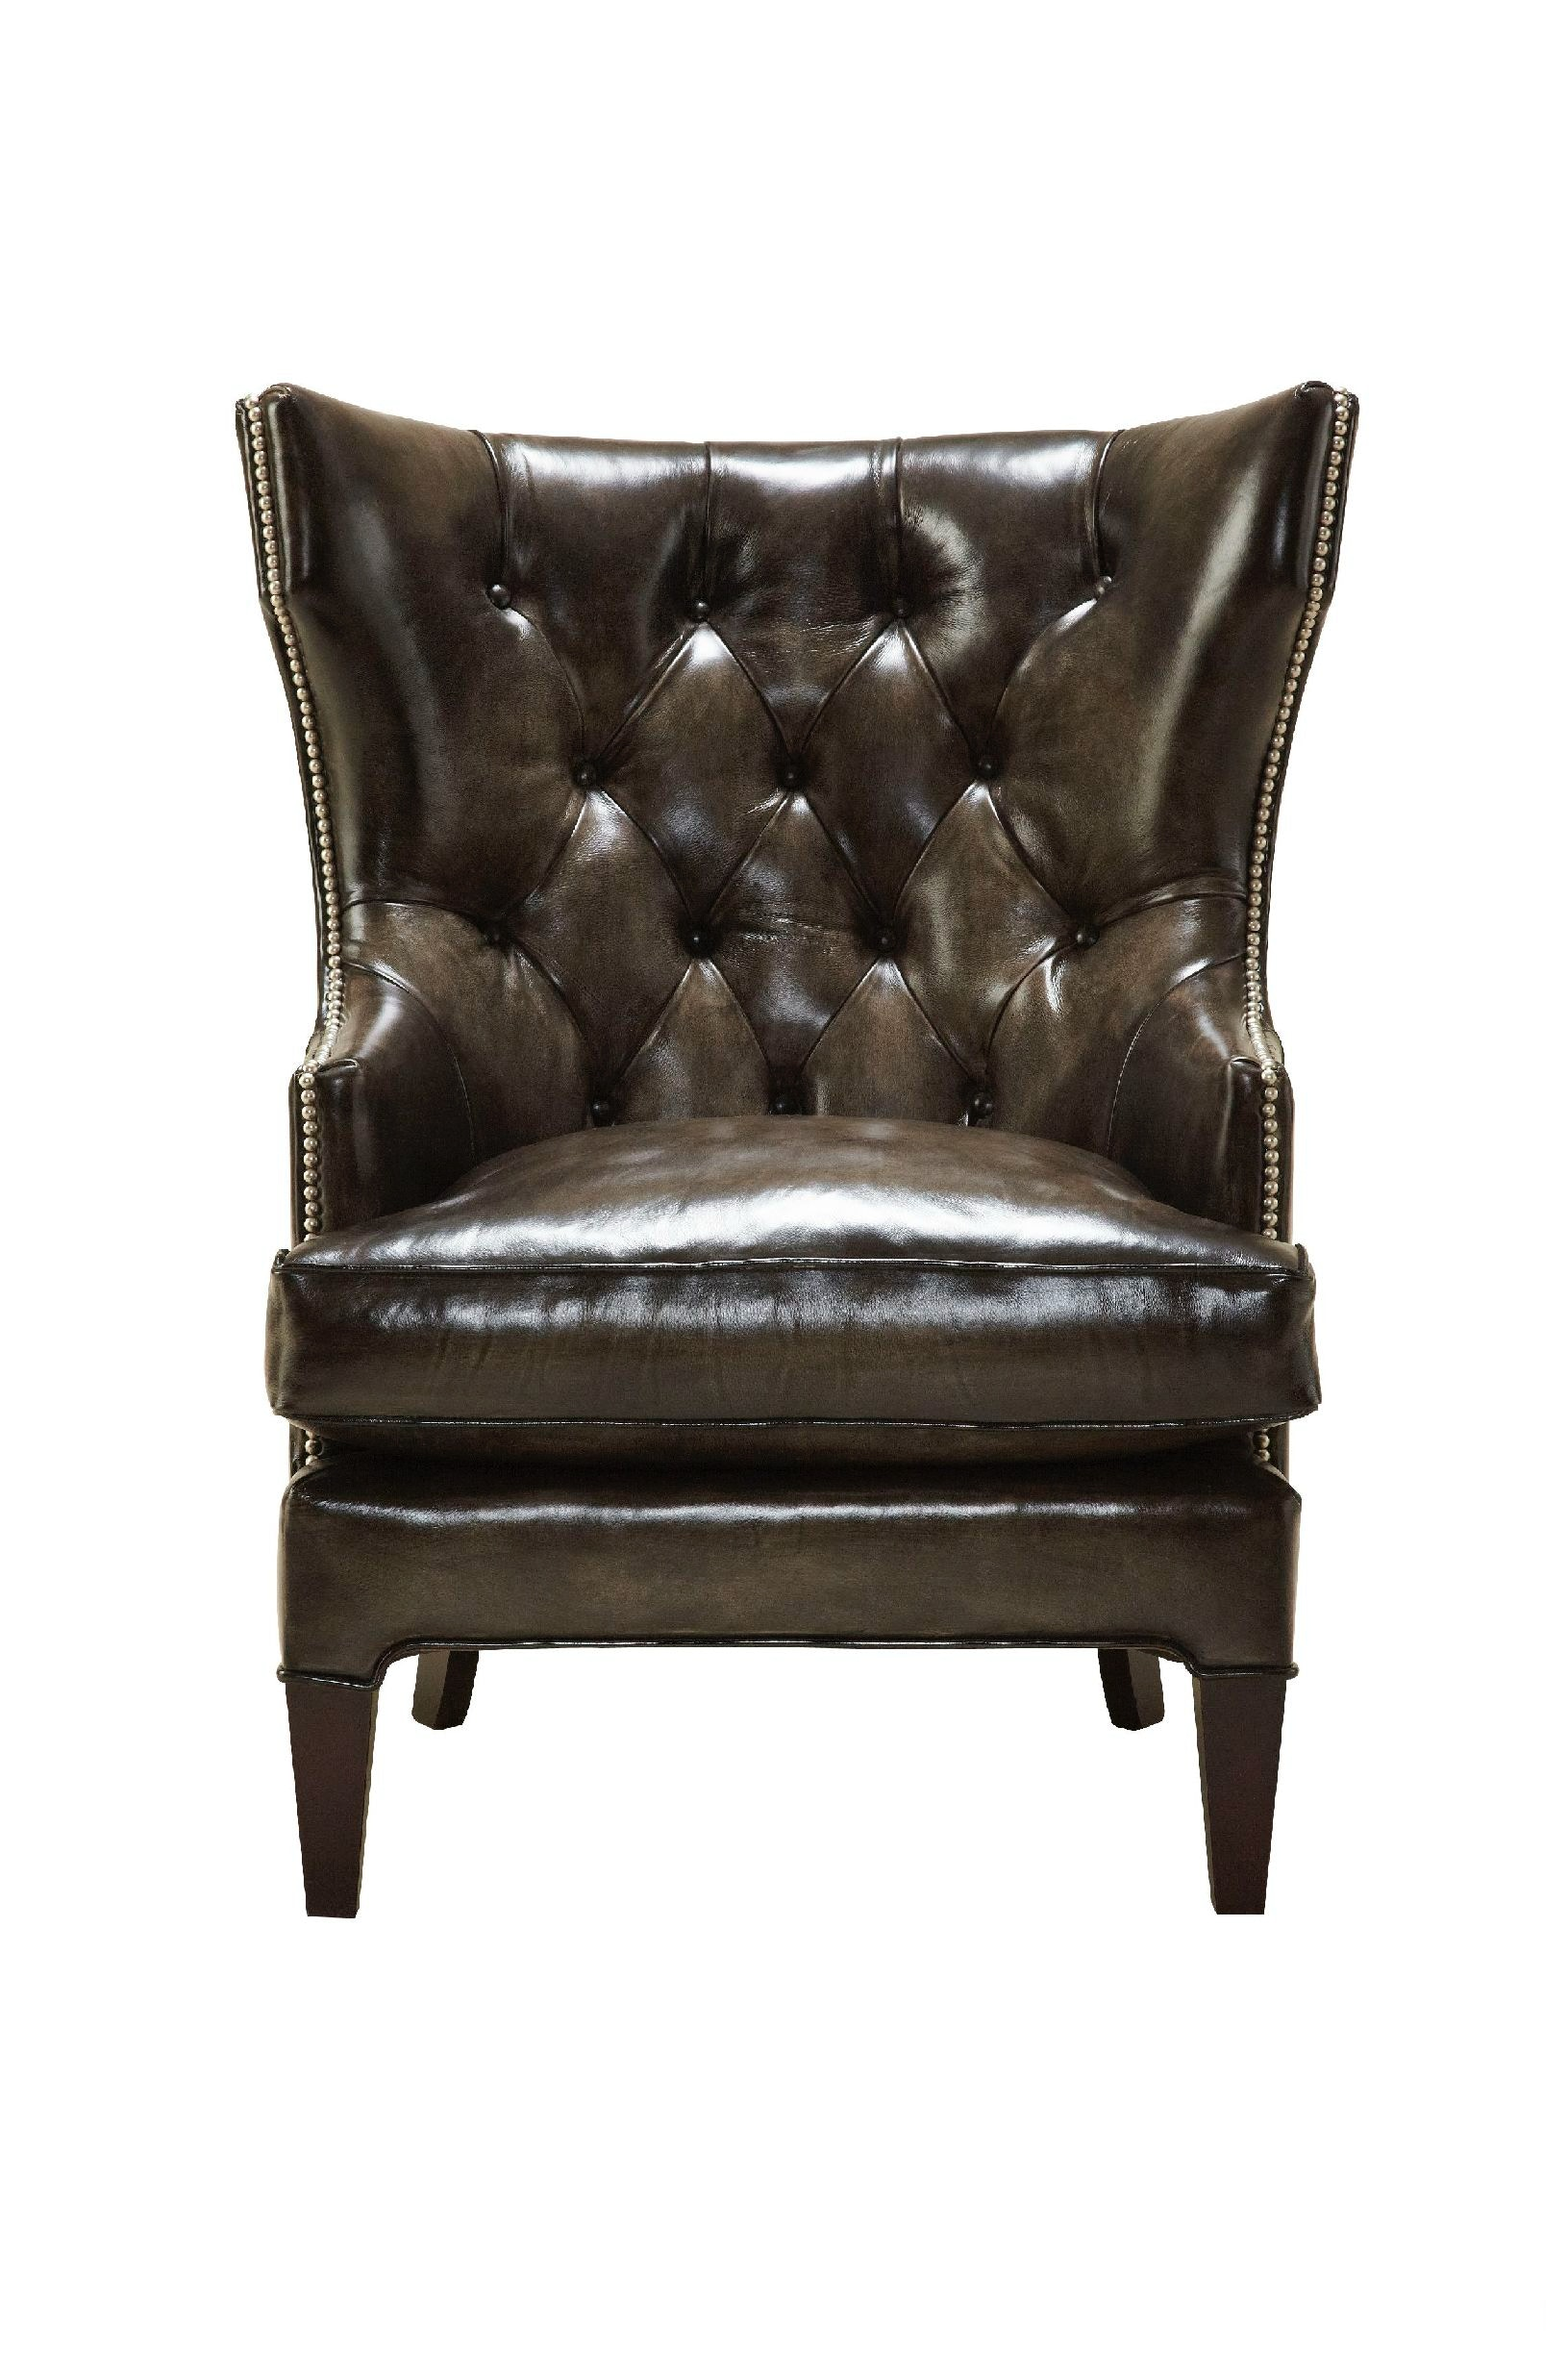 Southern Furniture Living Room Hatton Chair 4978 Matter Brothers Furniture Fort Myers